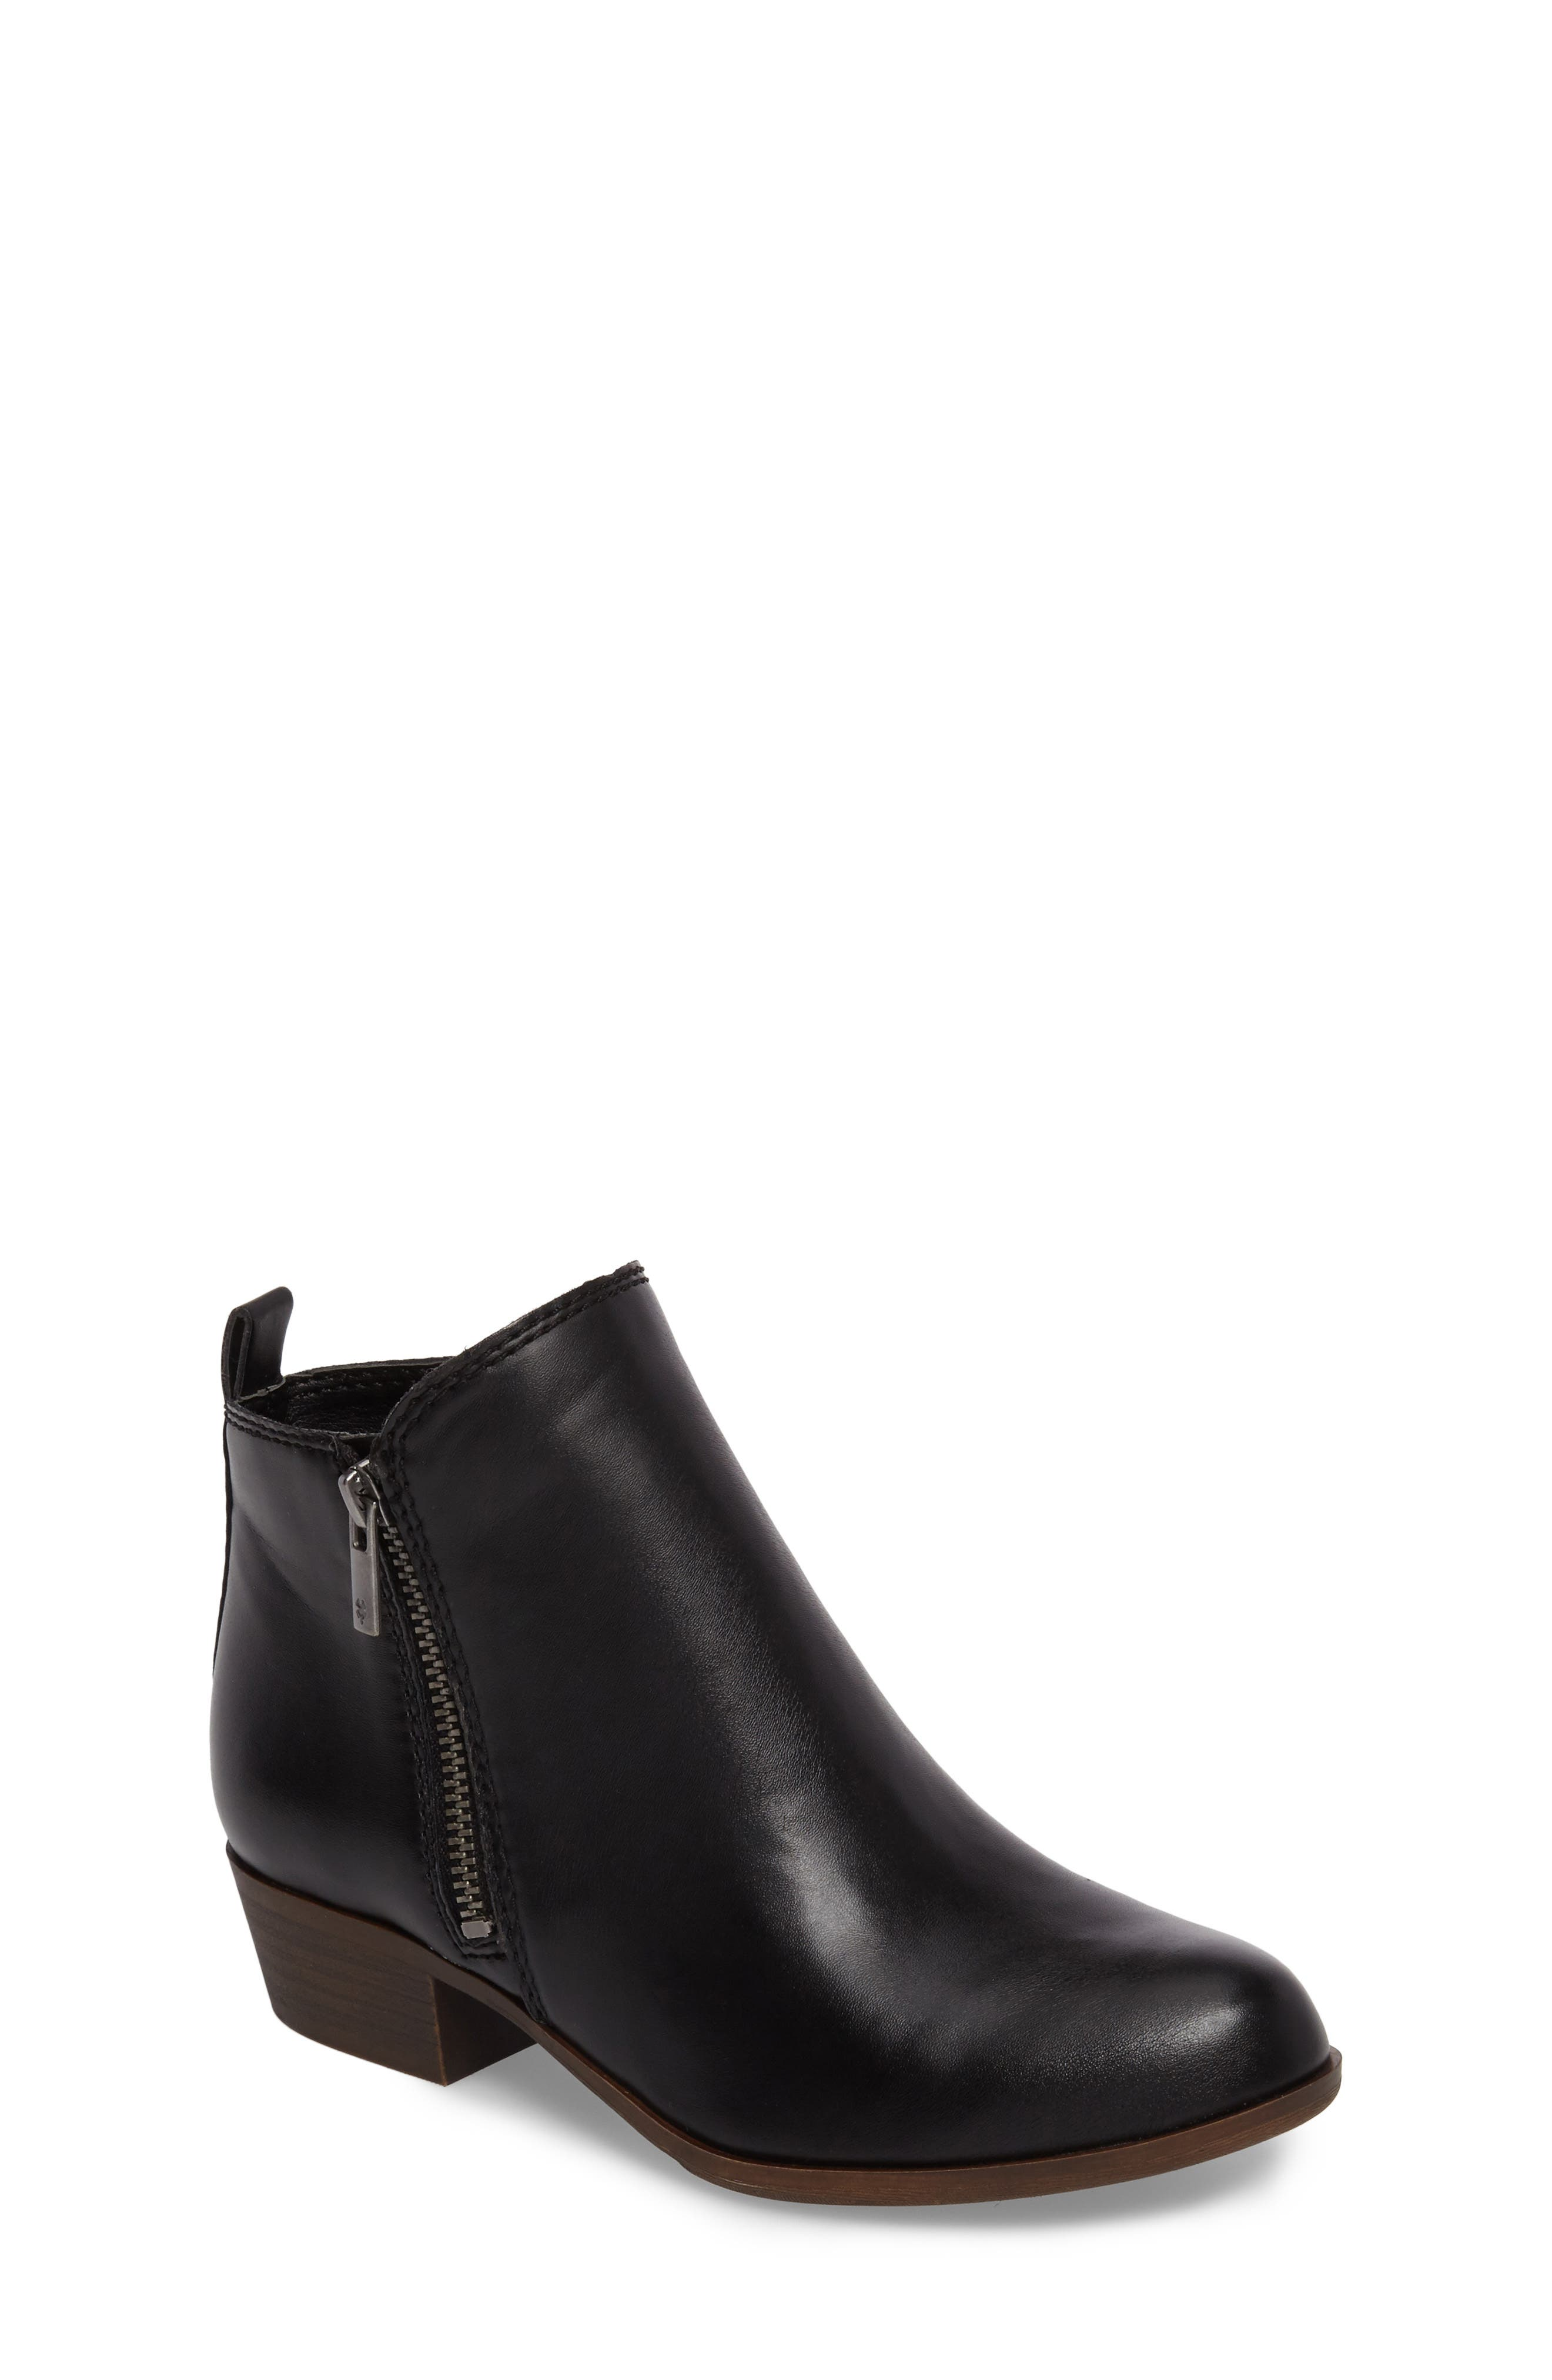 LUCKY BRAND, Basel Double-Zip Bootie, Main thumbnail 1, color, 001